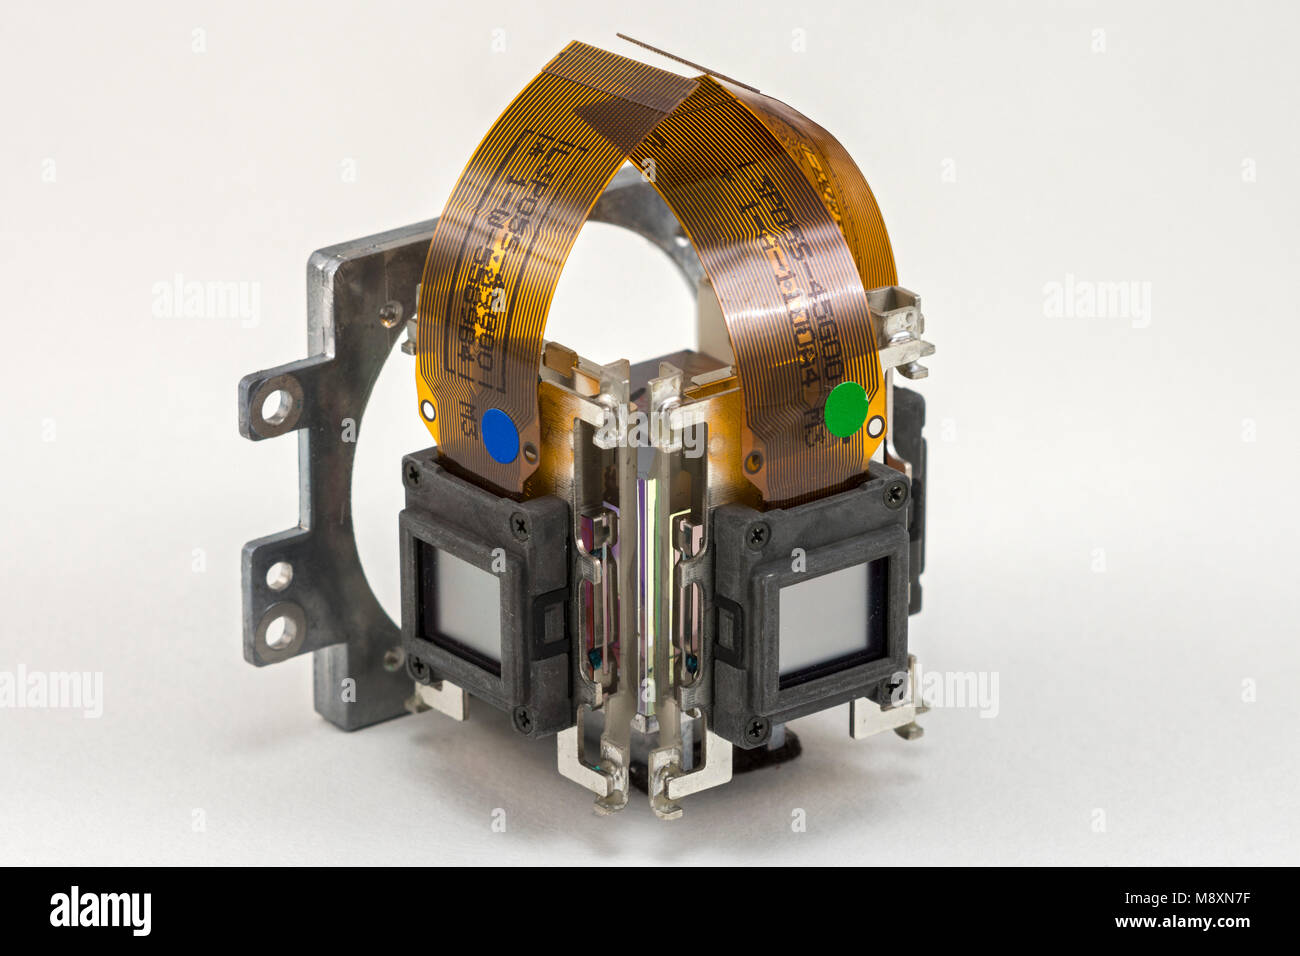 The LCD panels on the dichroic prism assembly of a digital projector.  Showing the blue and green channels. - Stock Image